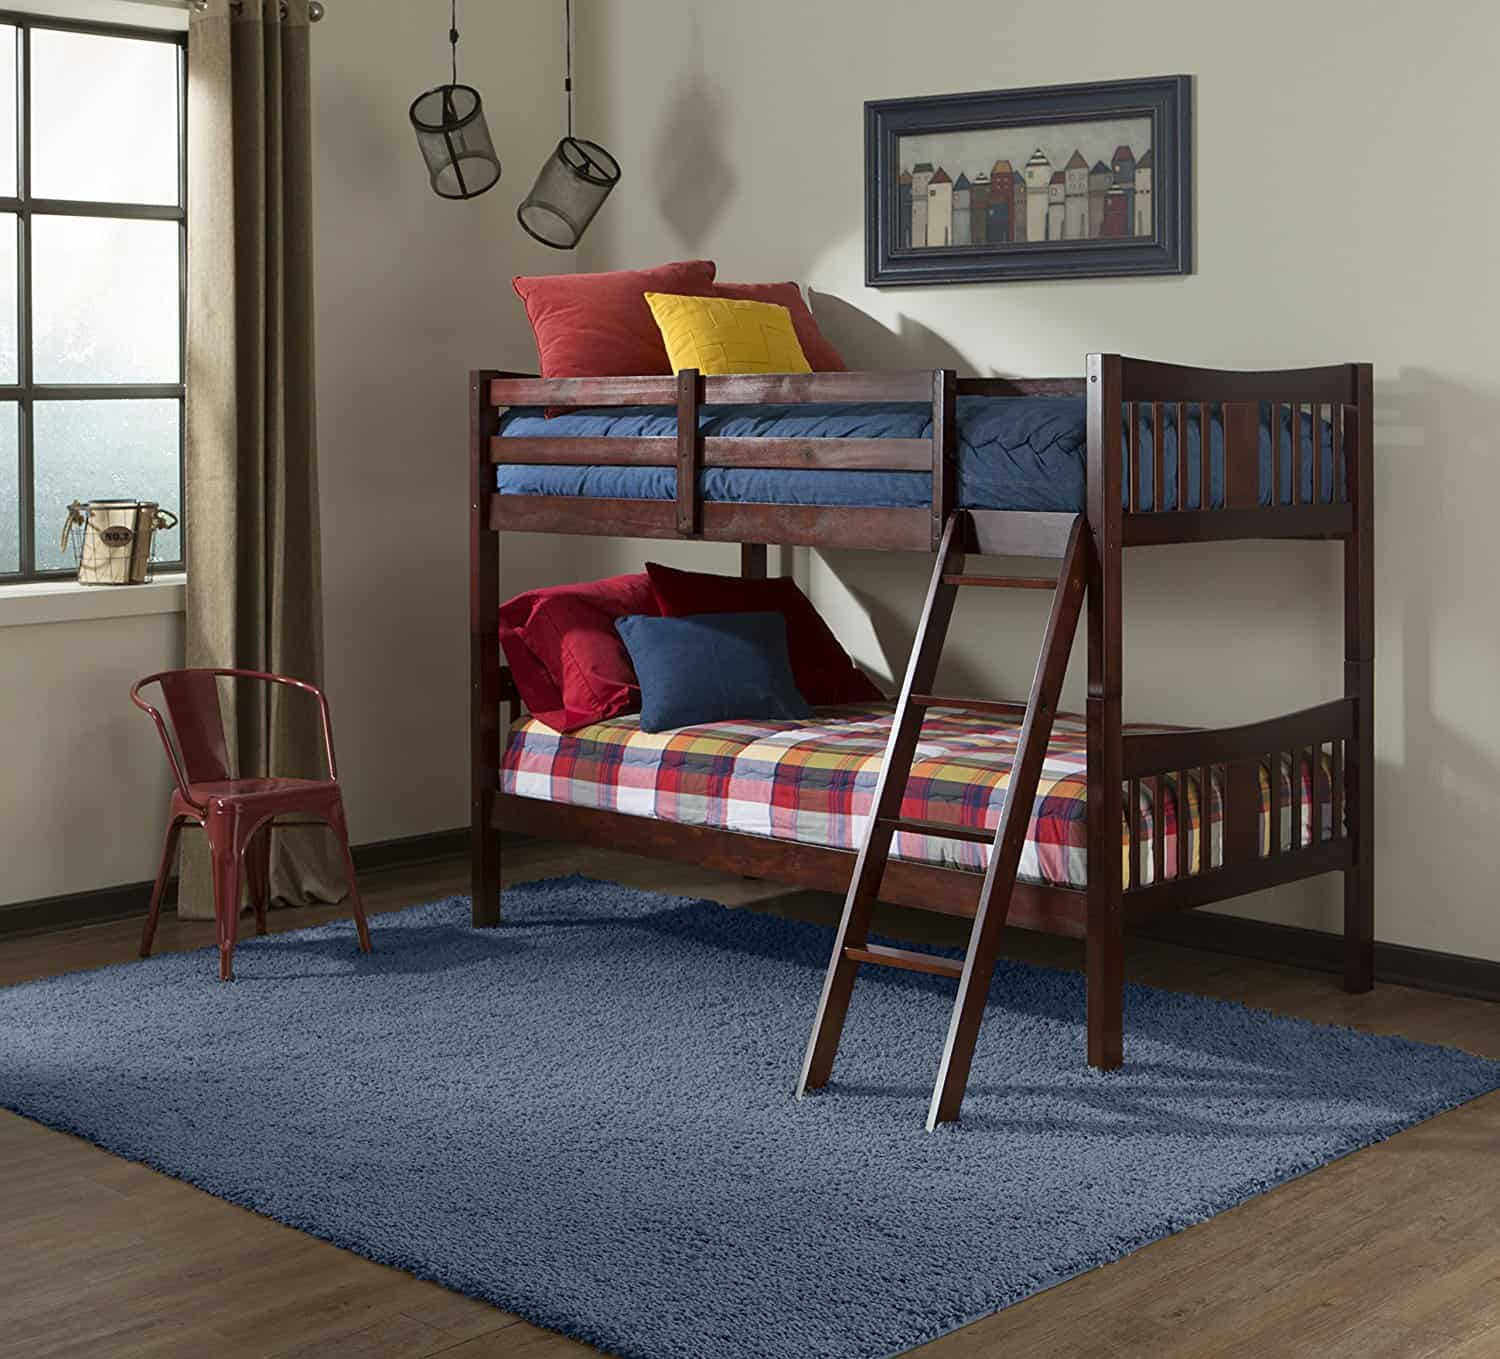 Best bunk beds for small spaces best for small spaces for Compact beds